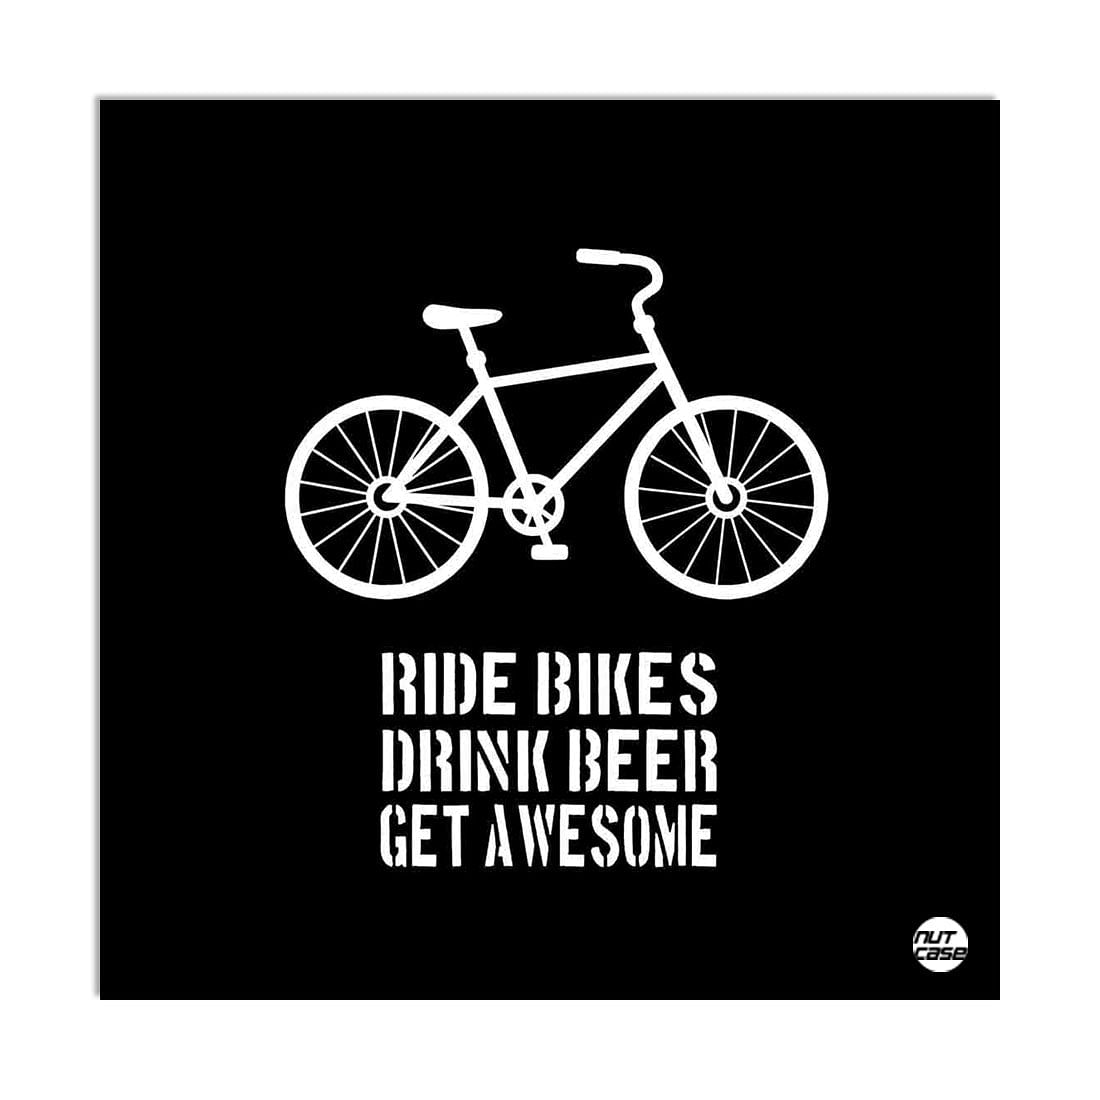 Wall Art Decor Panel For Home - Ride Bikes